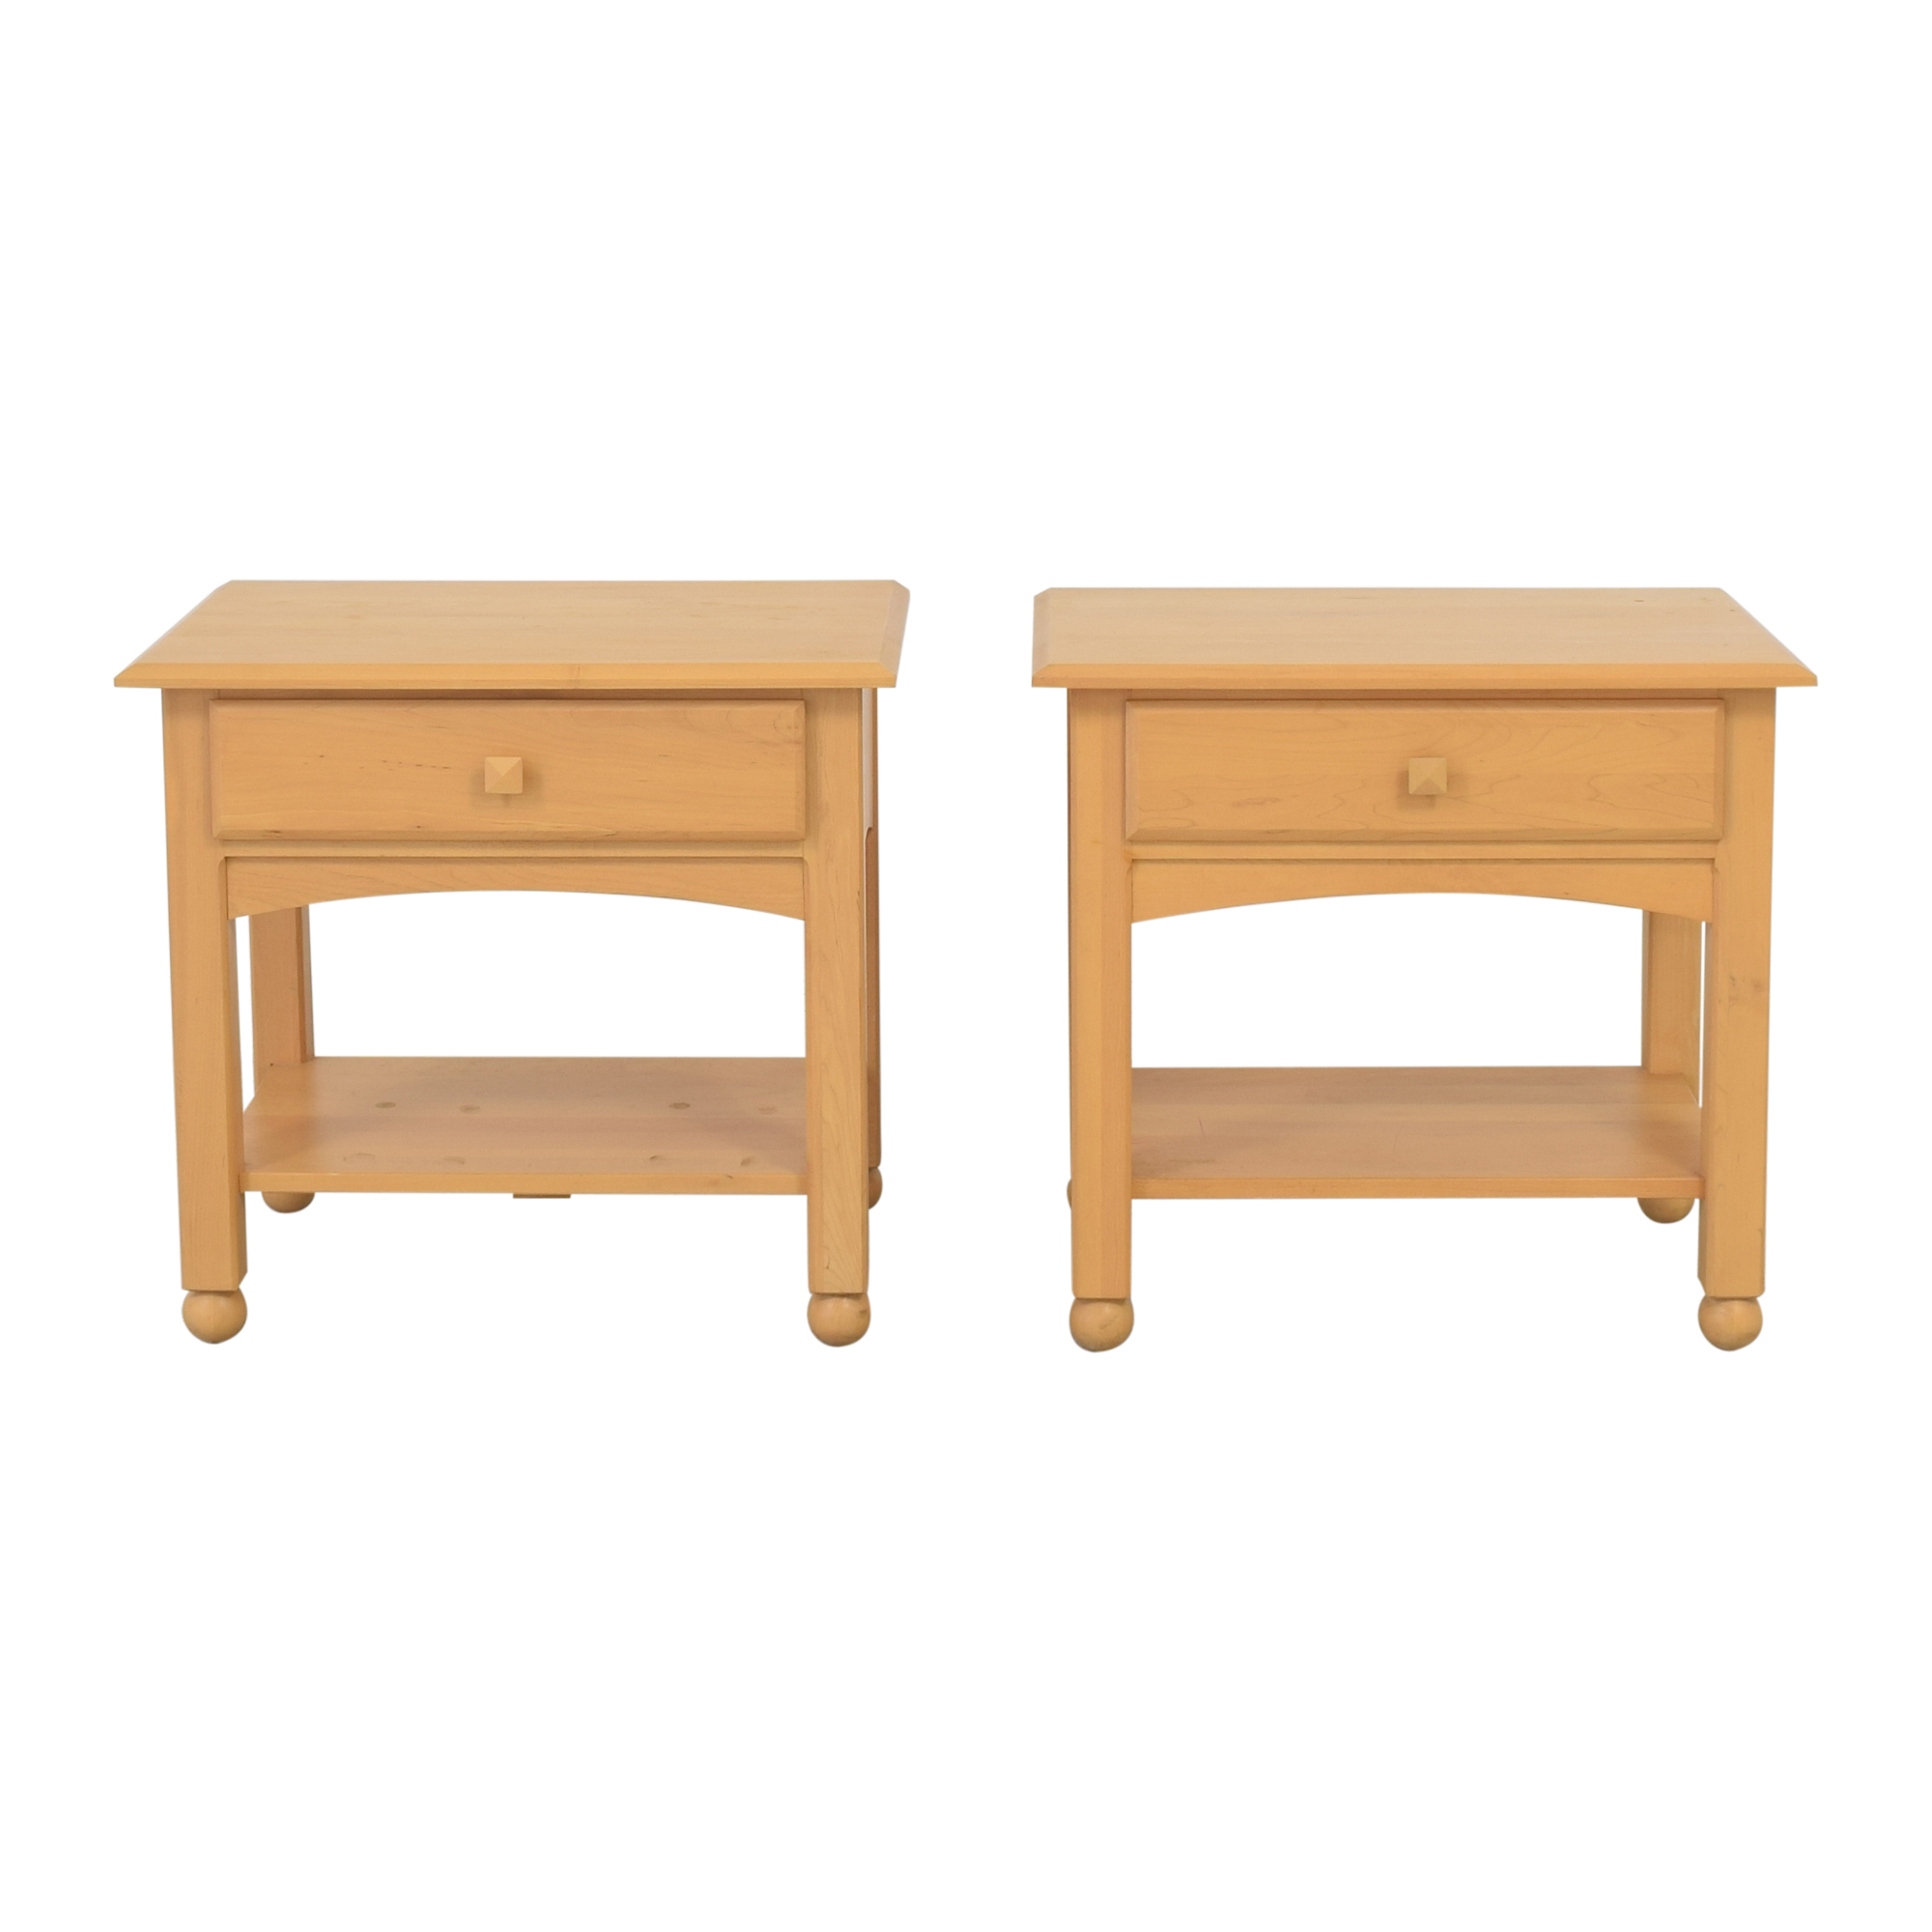 Ethan Allen Ethan Allen American Dimensions End Tables dimensions